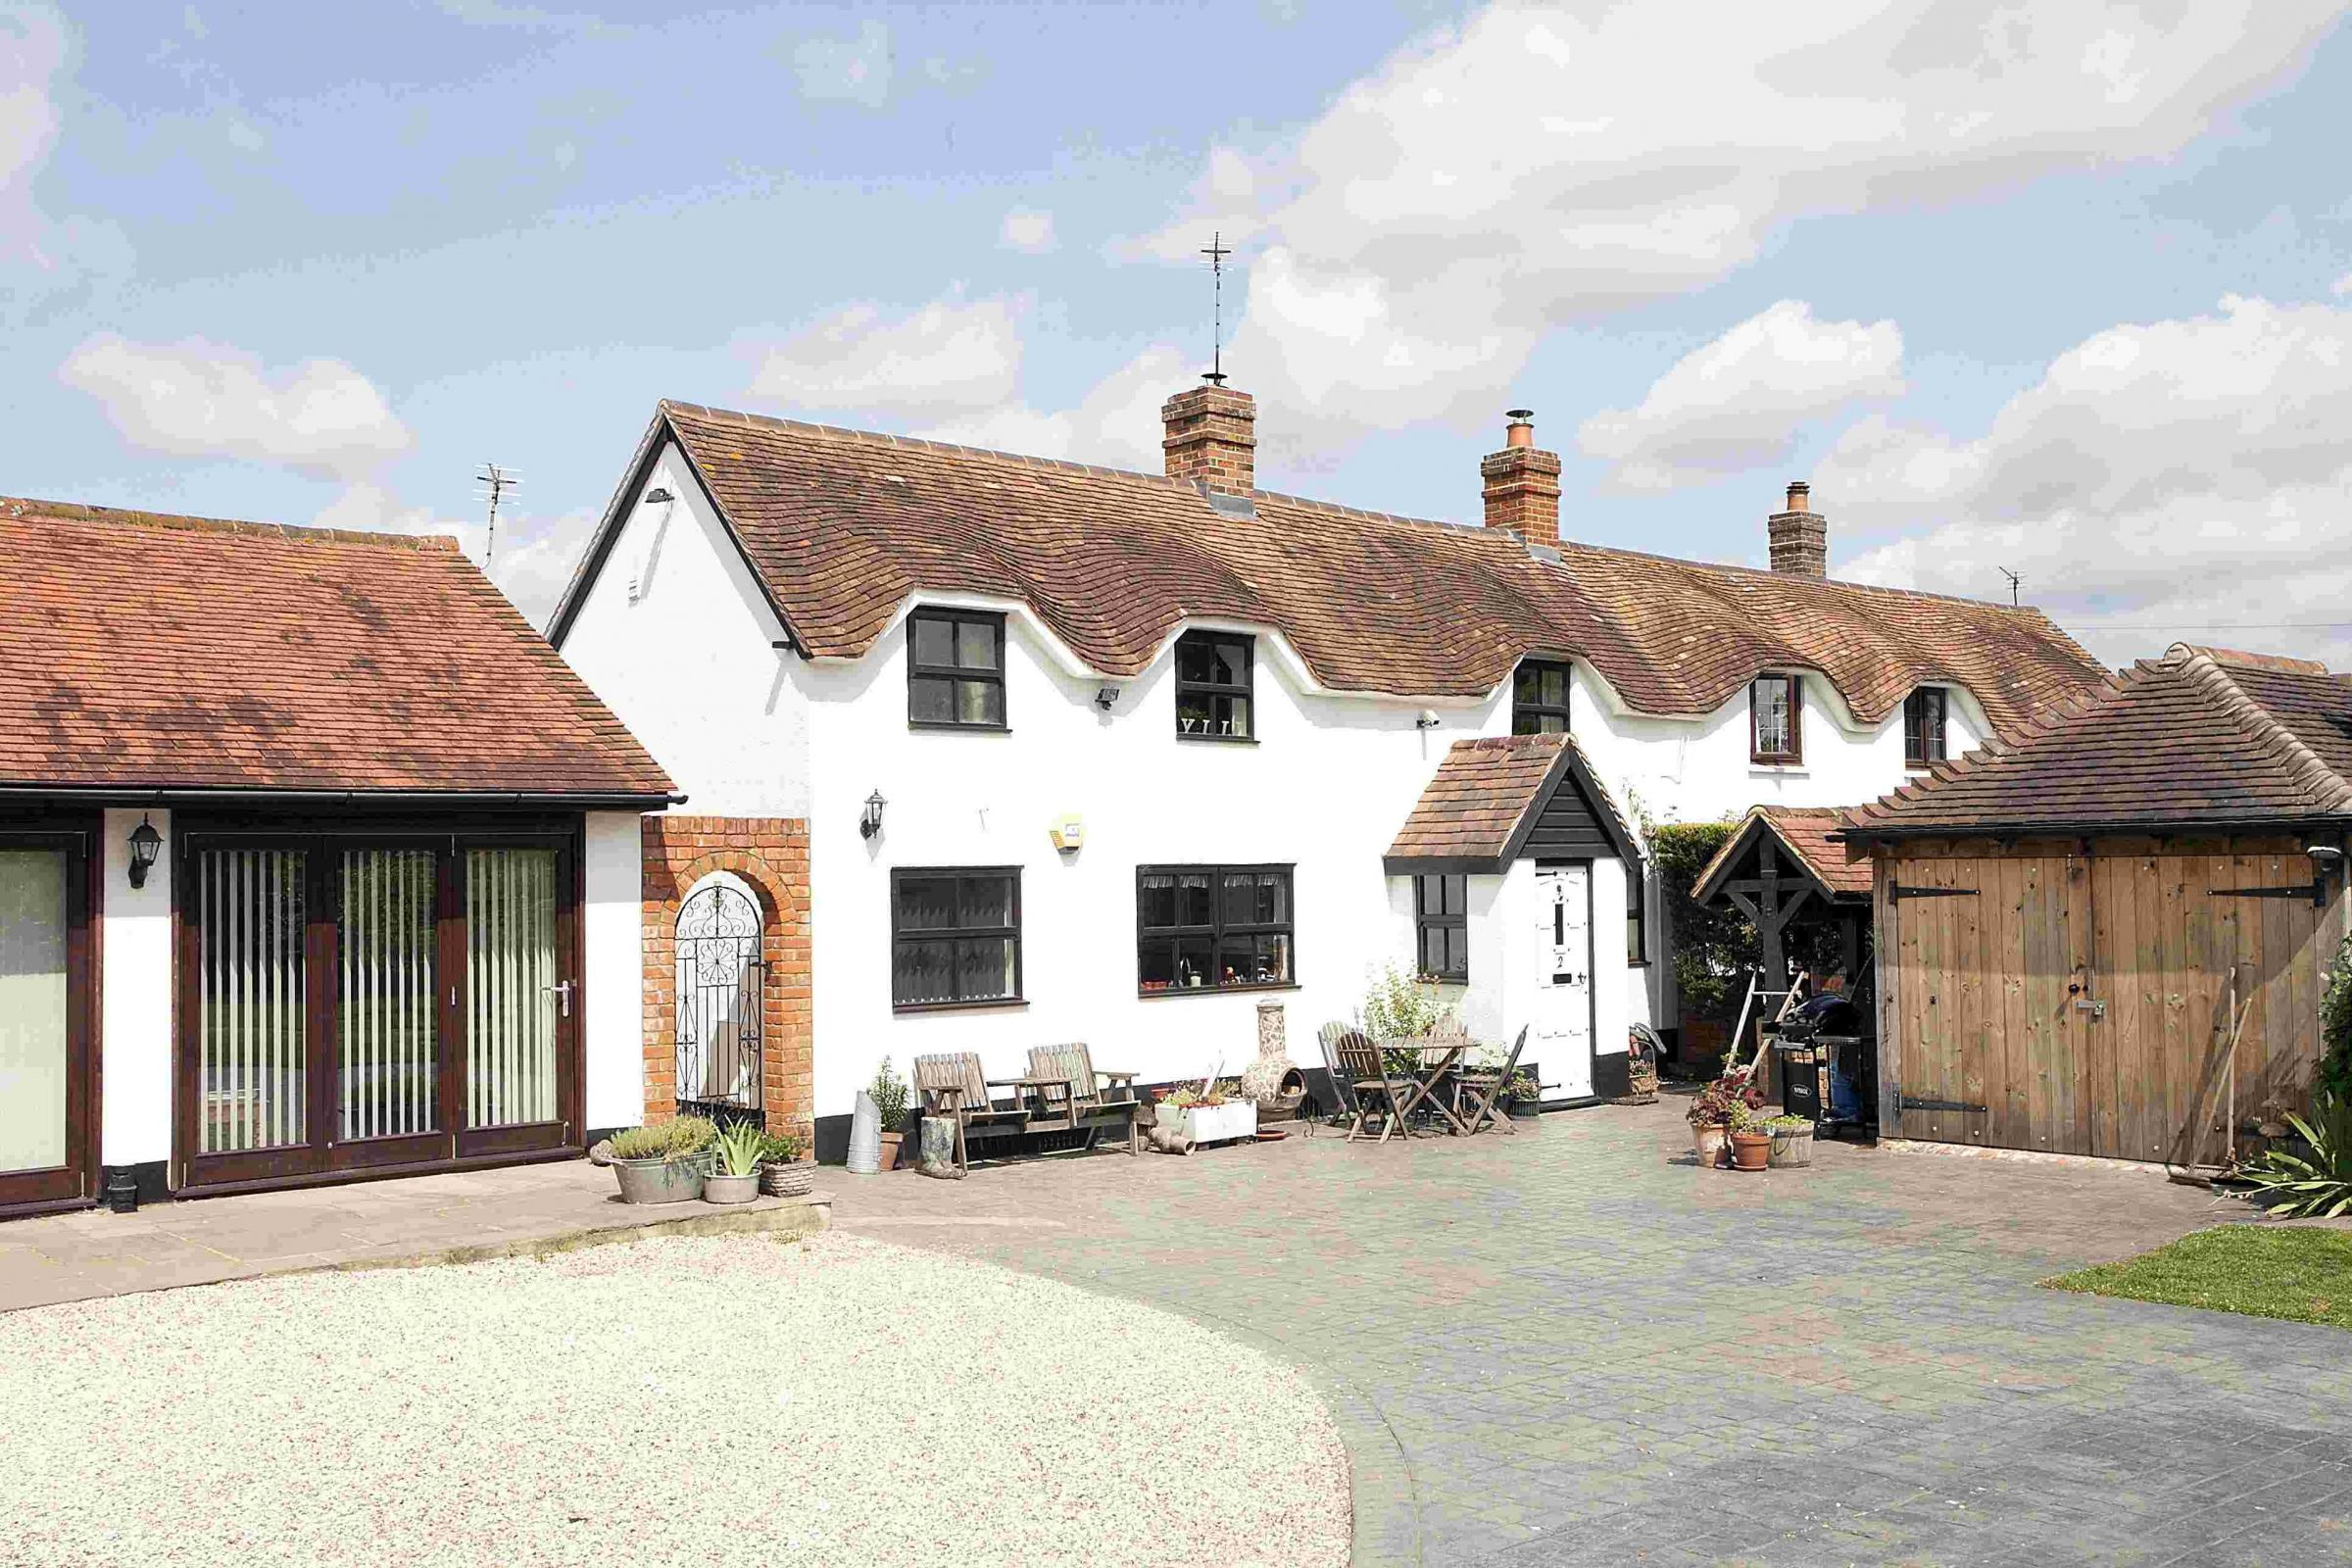 Cherry Tree Cottage, at Pamber Green, near Basingstoke, sold by Carter Jonas, for £475,000 in the autumn of 2013